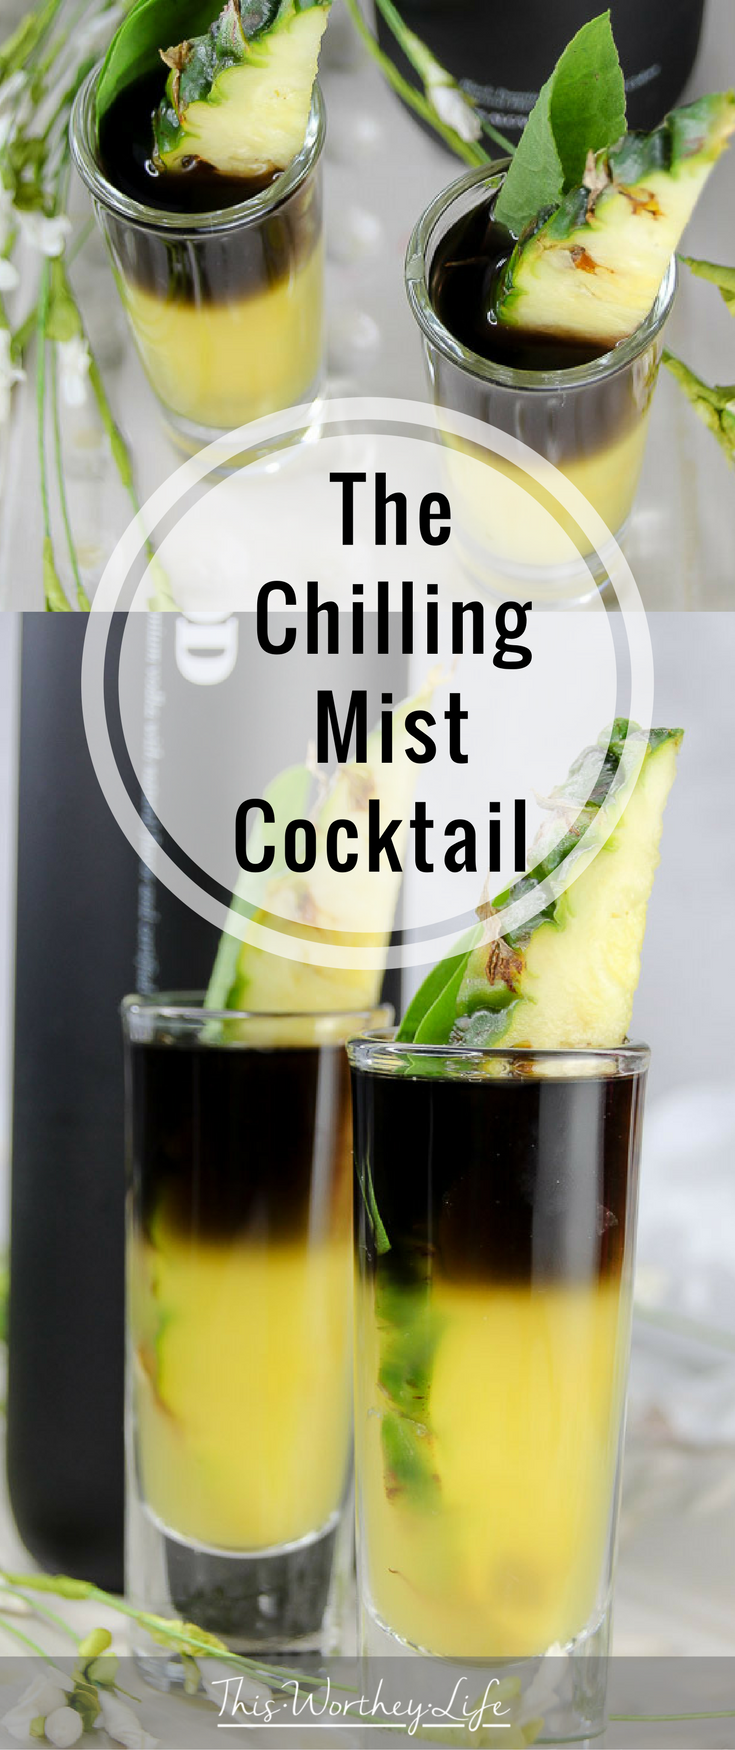 Marvel's Black Panther arrives in theaters February 16th. We're celebrating with a series of Black Panther Themed cocktails. The Chilling Mist Cocktail is made with black vodka,Sorrel Infused Simple Syrup, pineapple juice, and a pineapple garnish. Grab the recipe below and great ready to celebrate all things, Black Panther!